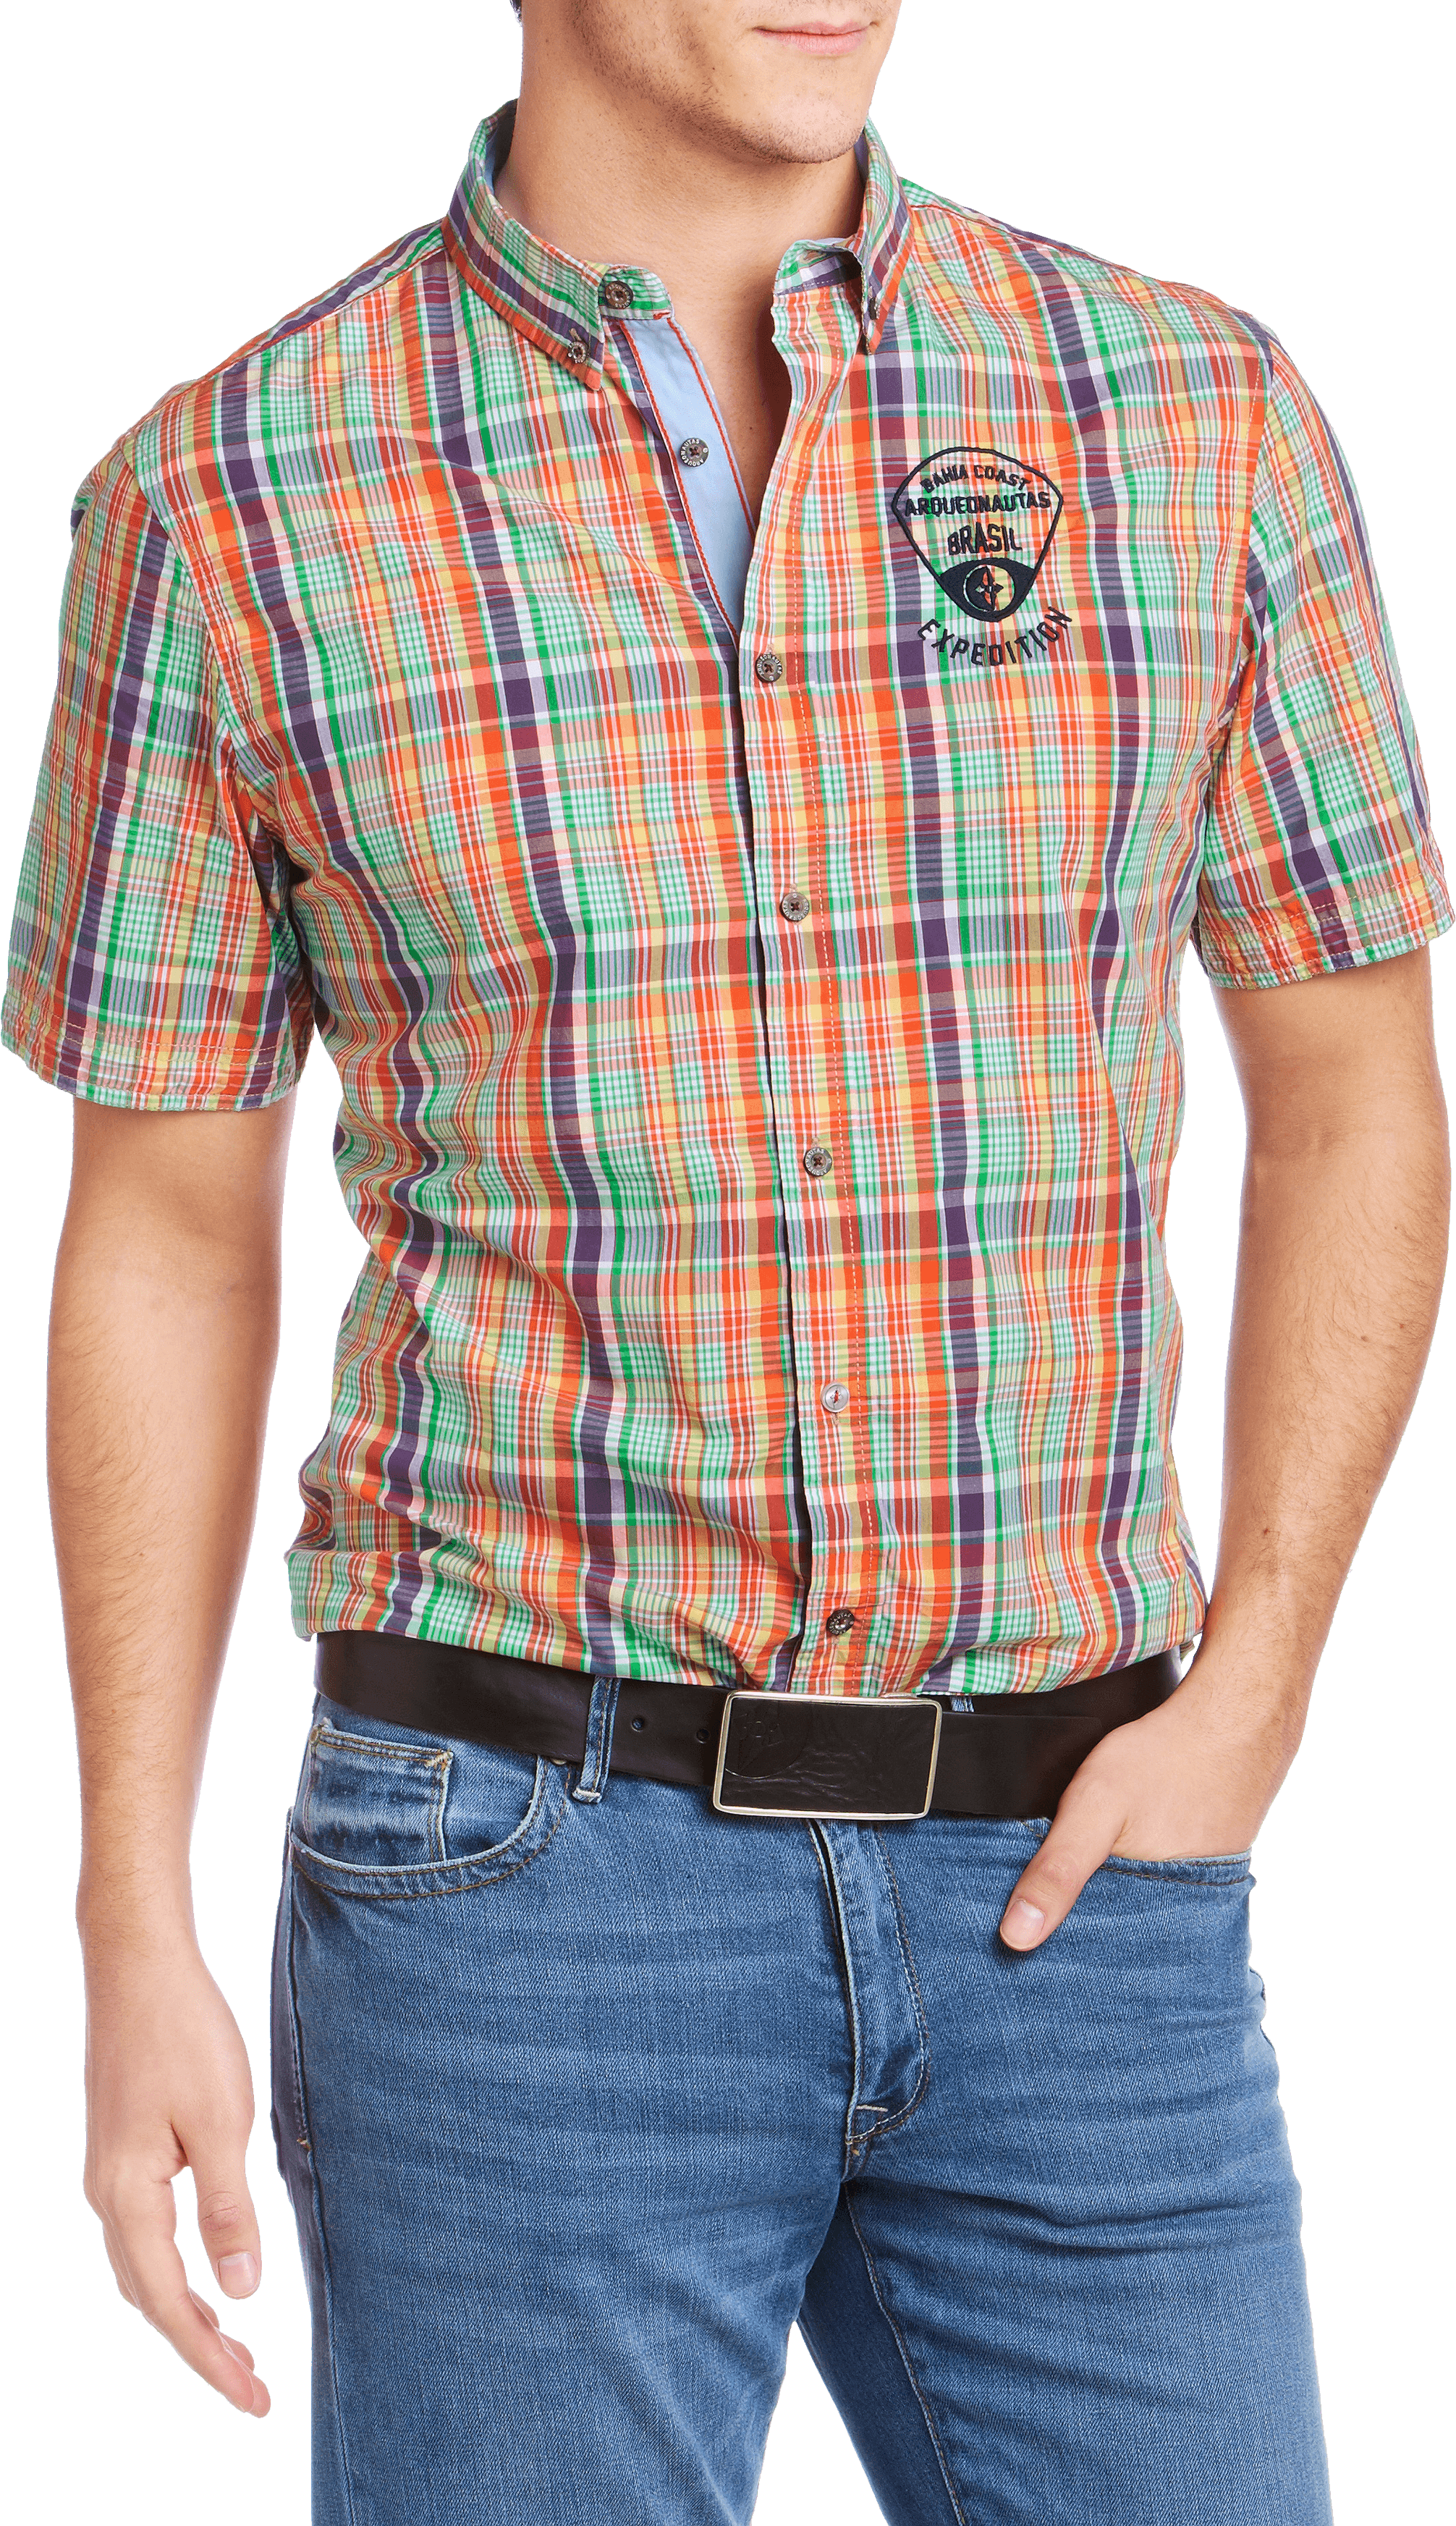 Men Polo Shirt Png Image PNG Image